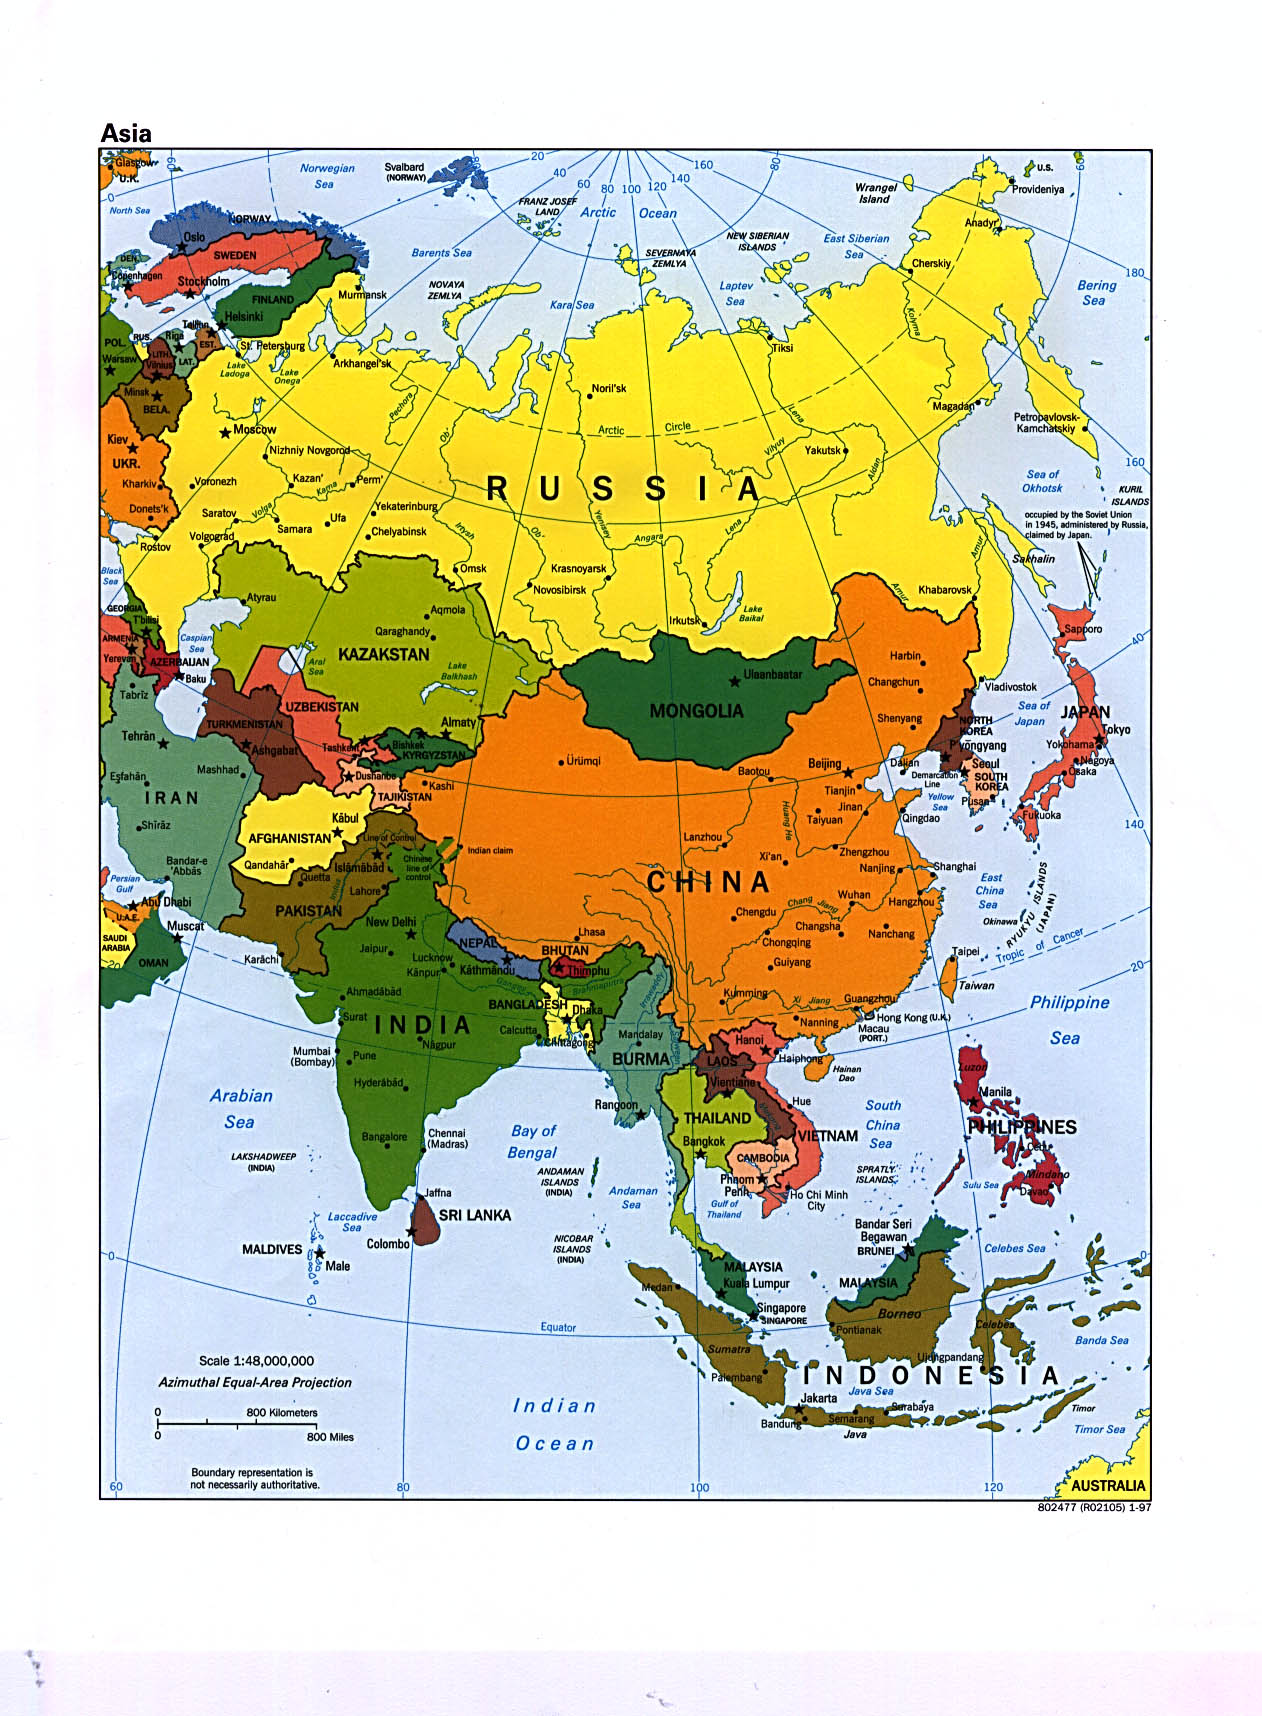 Large Map Of Asia.Large Political Map Of Asia Asia Large Political Map